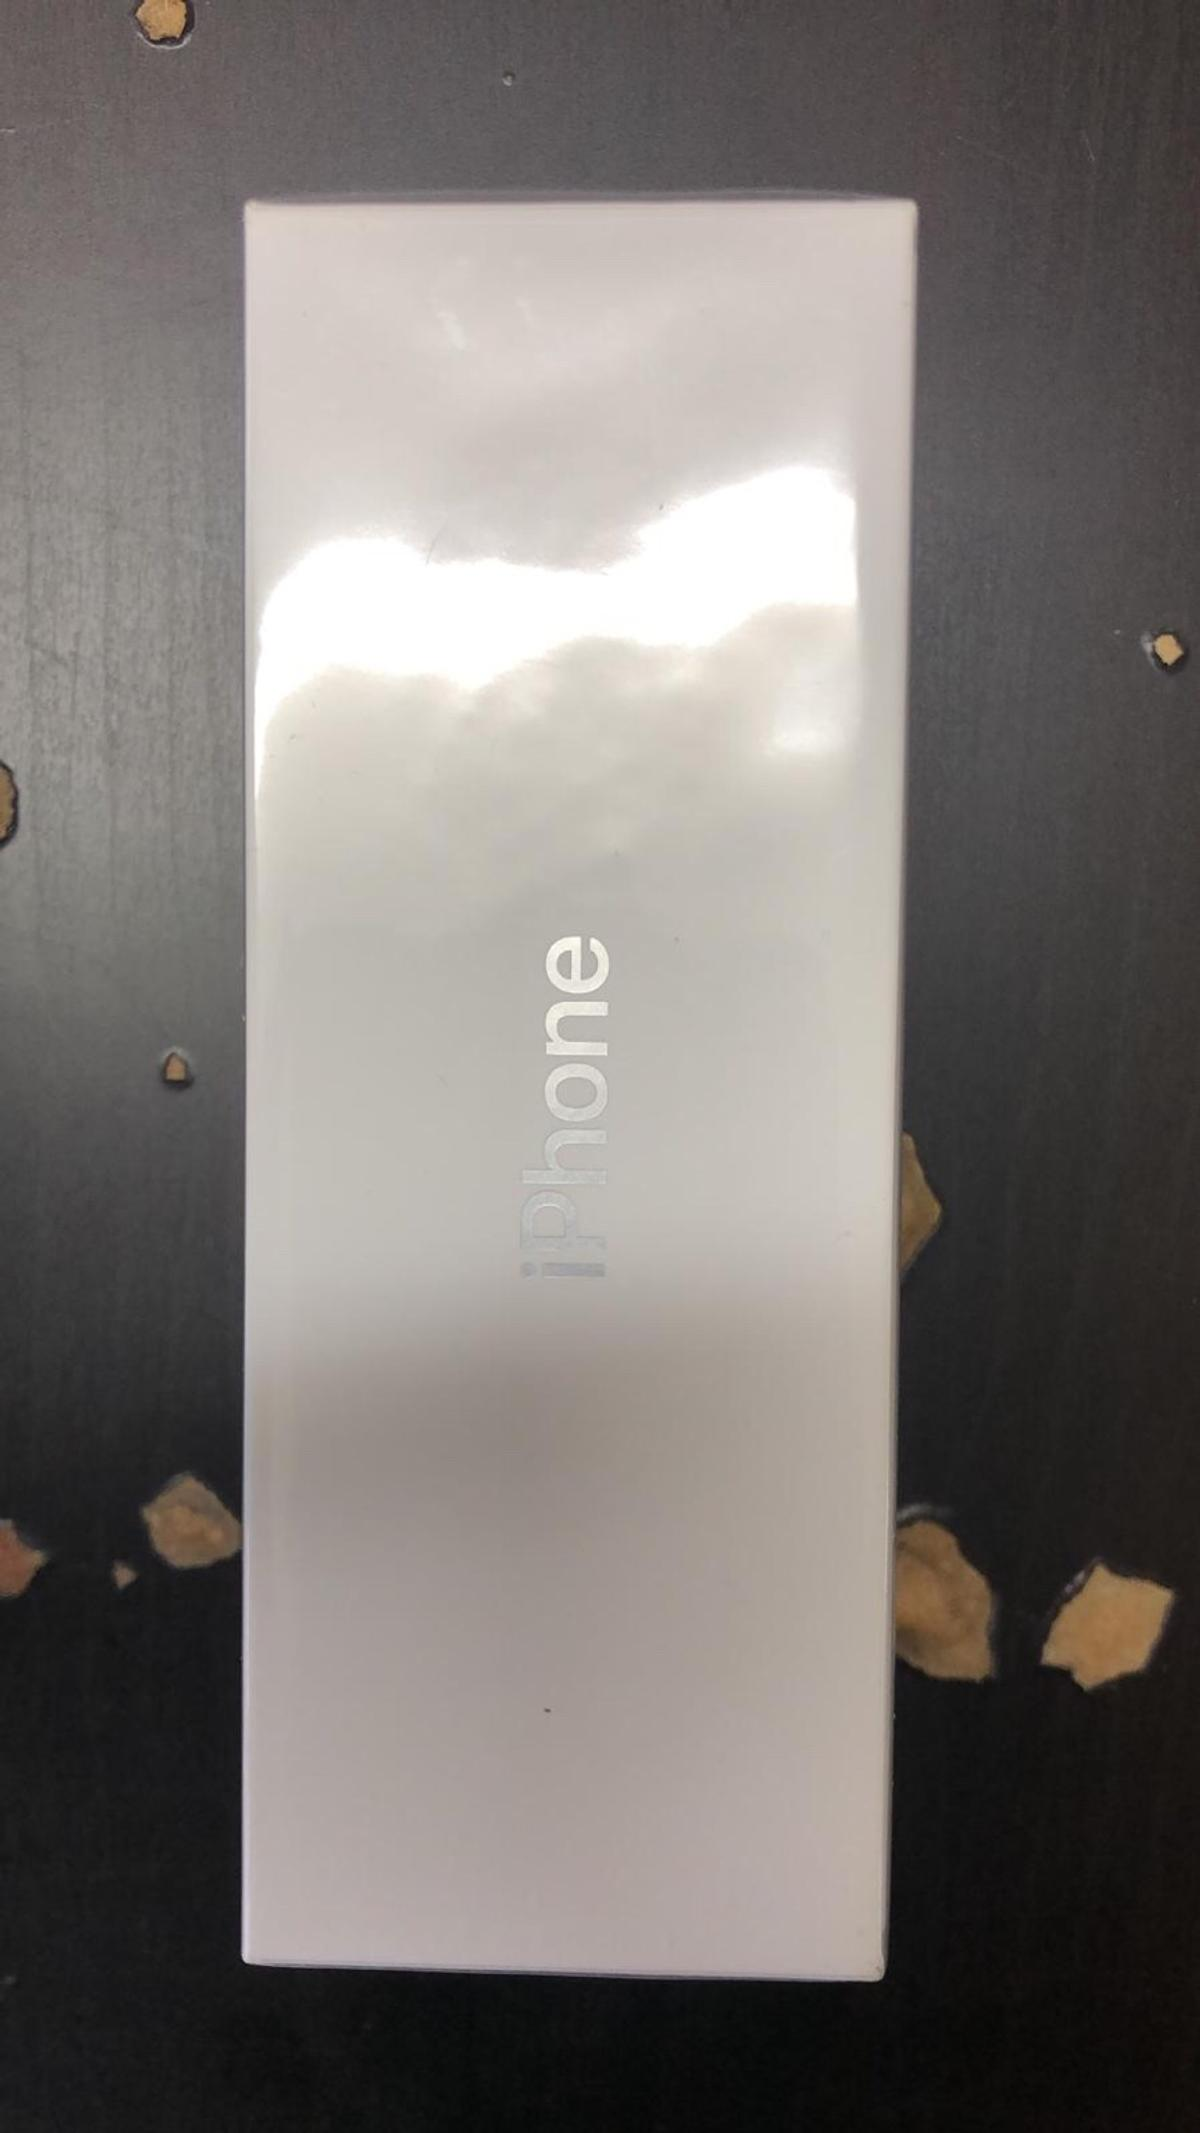 iPhone X brand new sealed unlocked to any network bought it 799 selling